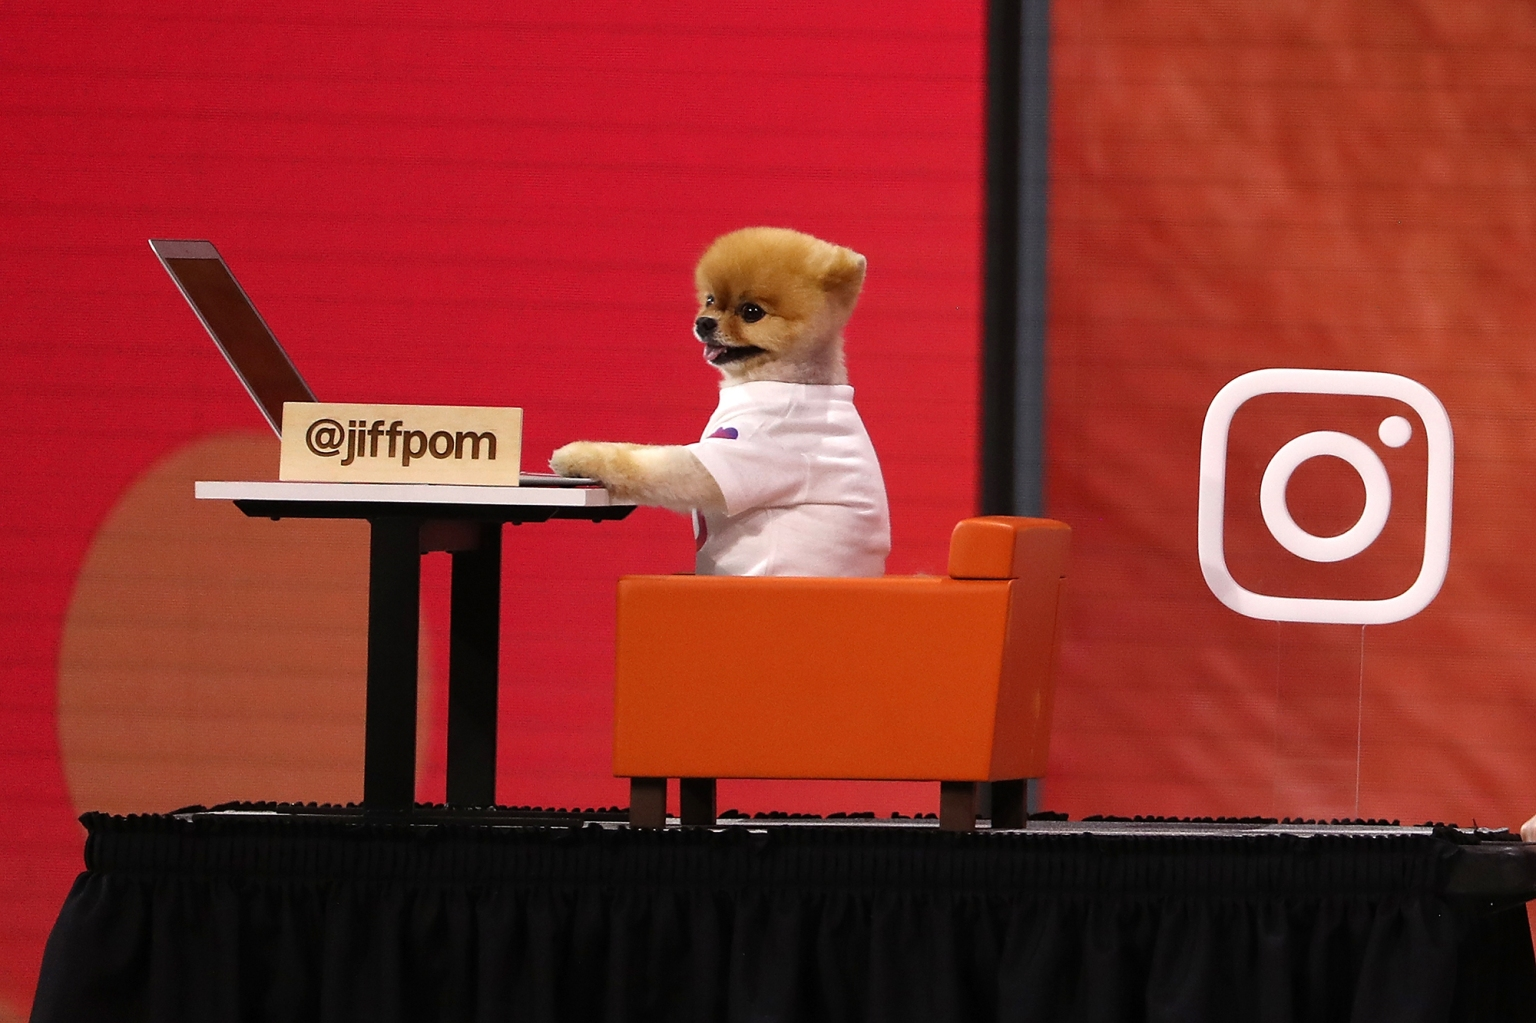 Instagram star user JiffPom, a pomeranian with more than 8 million Instagram followers, appears during the F8 Facebook Developers conference on May 1 in San Jose, California. Facebook CEO Mark Zuckerberg delivered the opening keynote to the developer conference that runs through May 2. Justin Sullivan/Getty Images